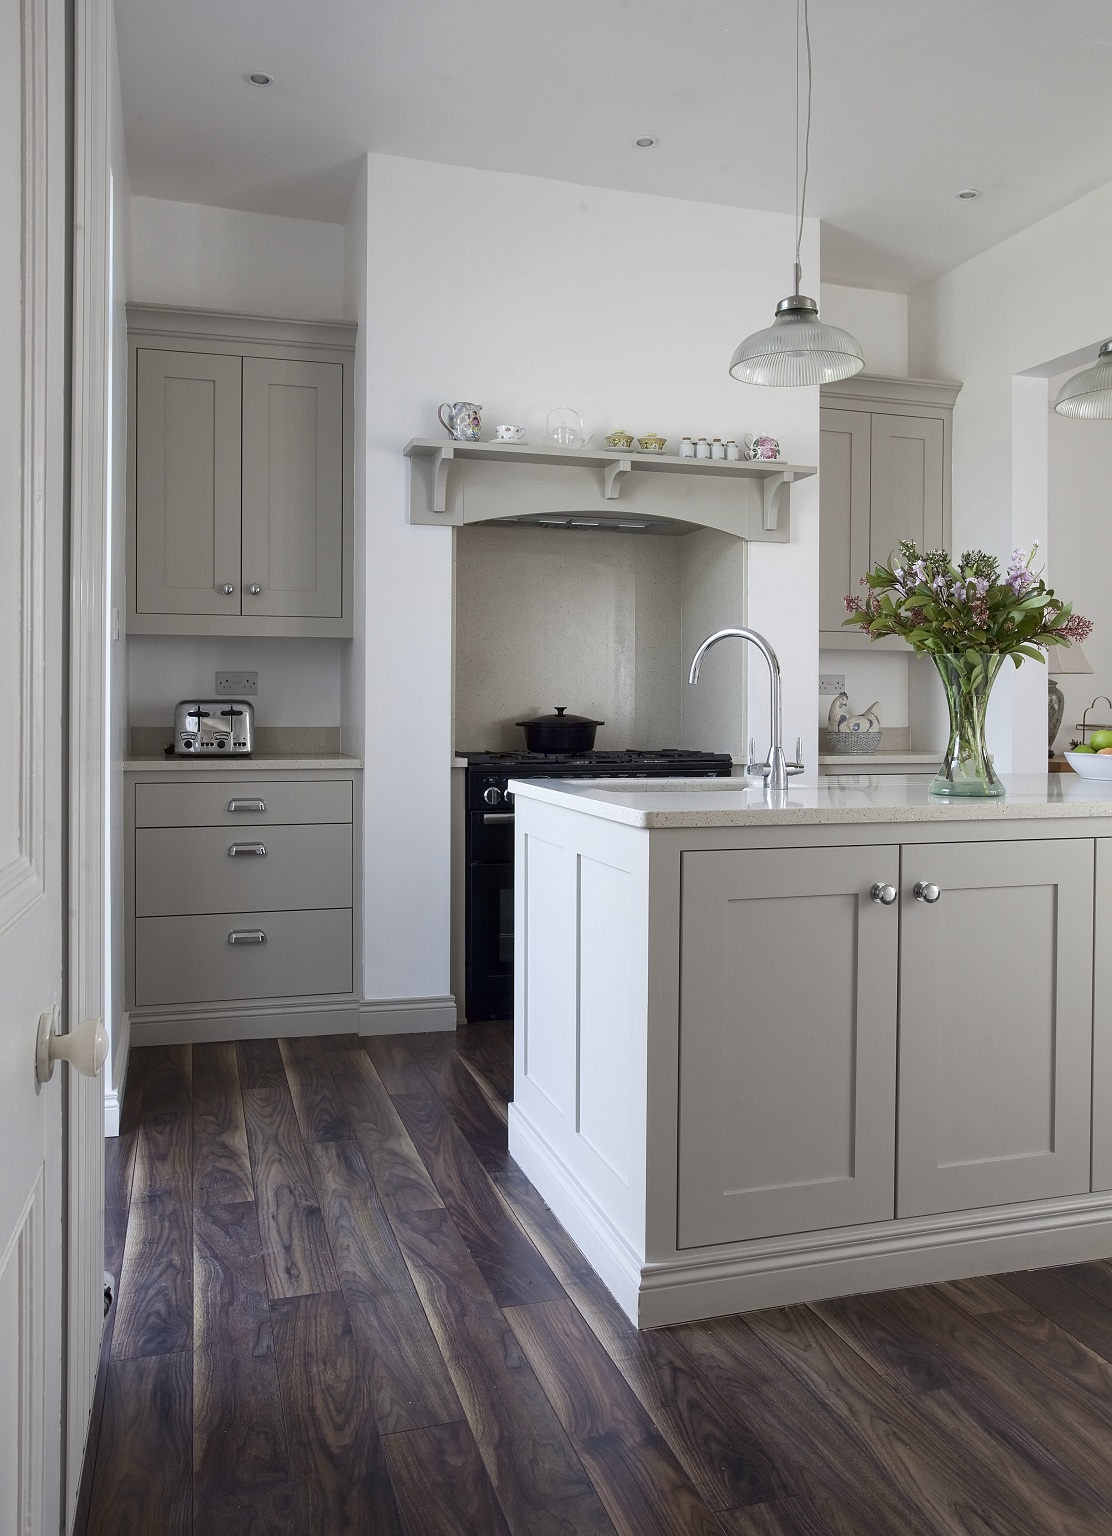 Modern country style farrow and ball pale powder colour case study - Modern Country Style Colour Study Farrow And Ball